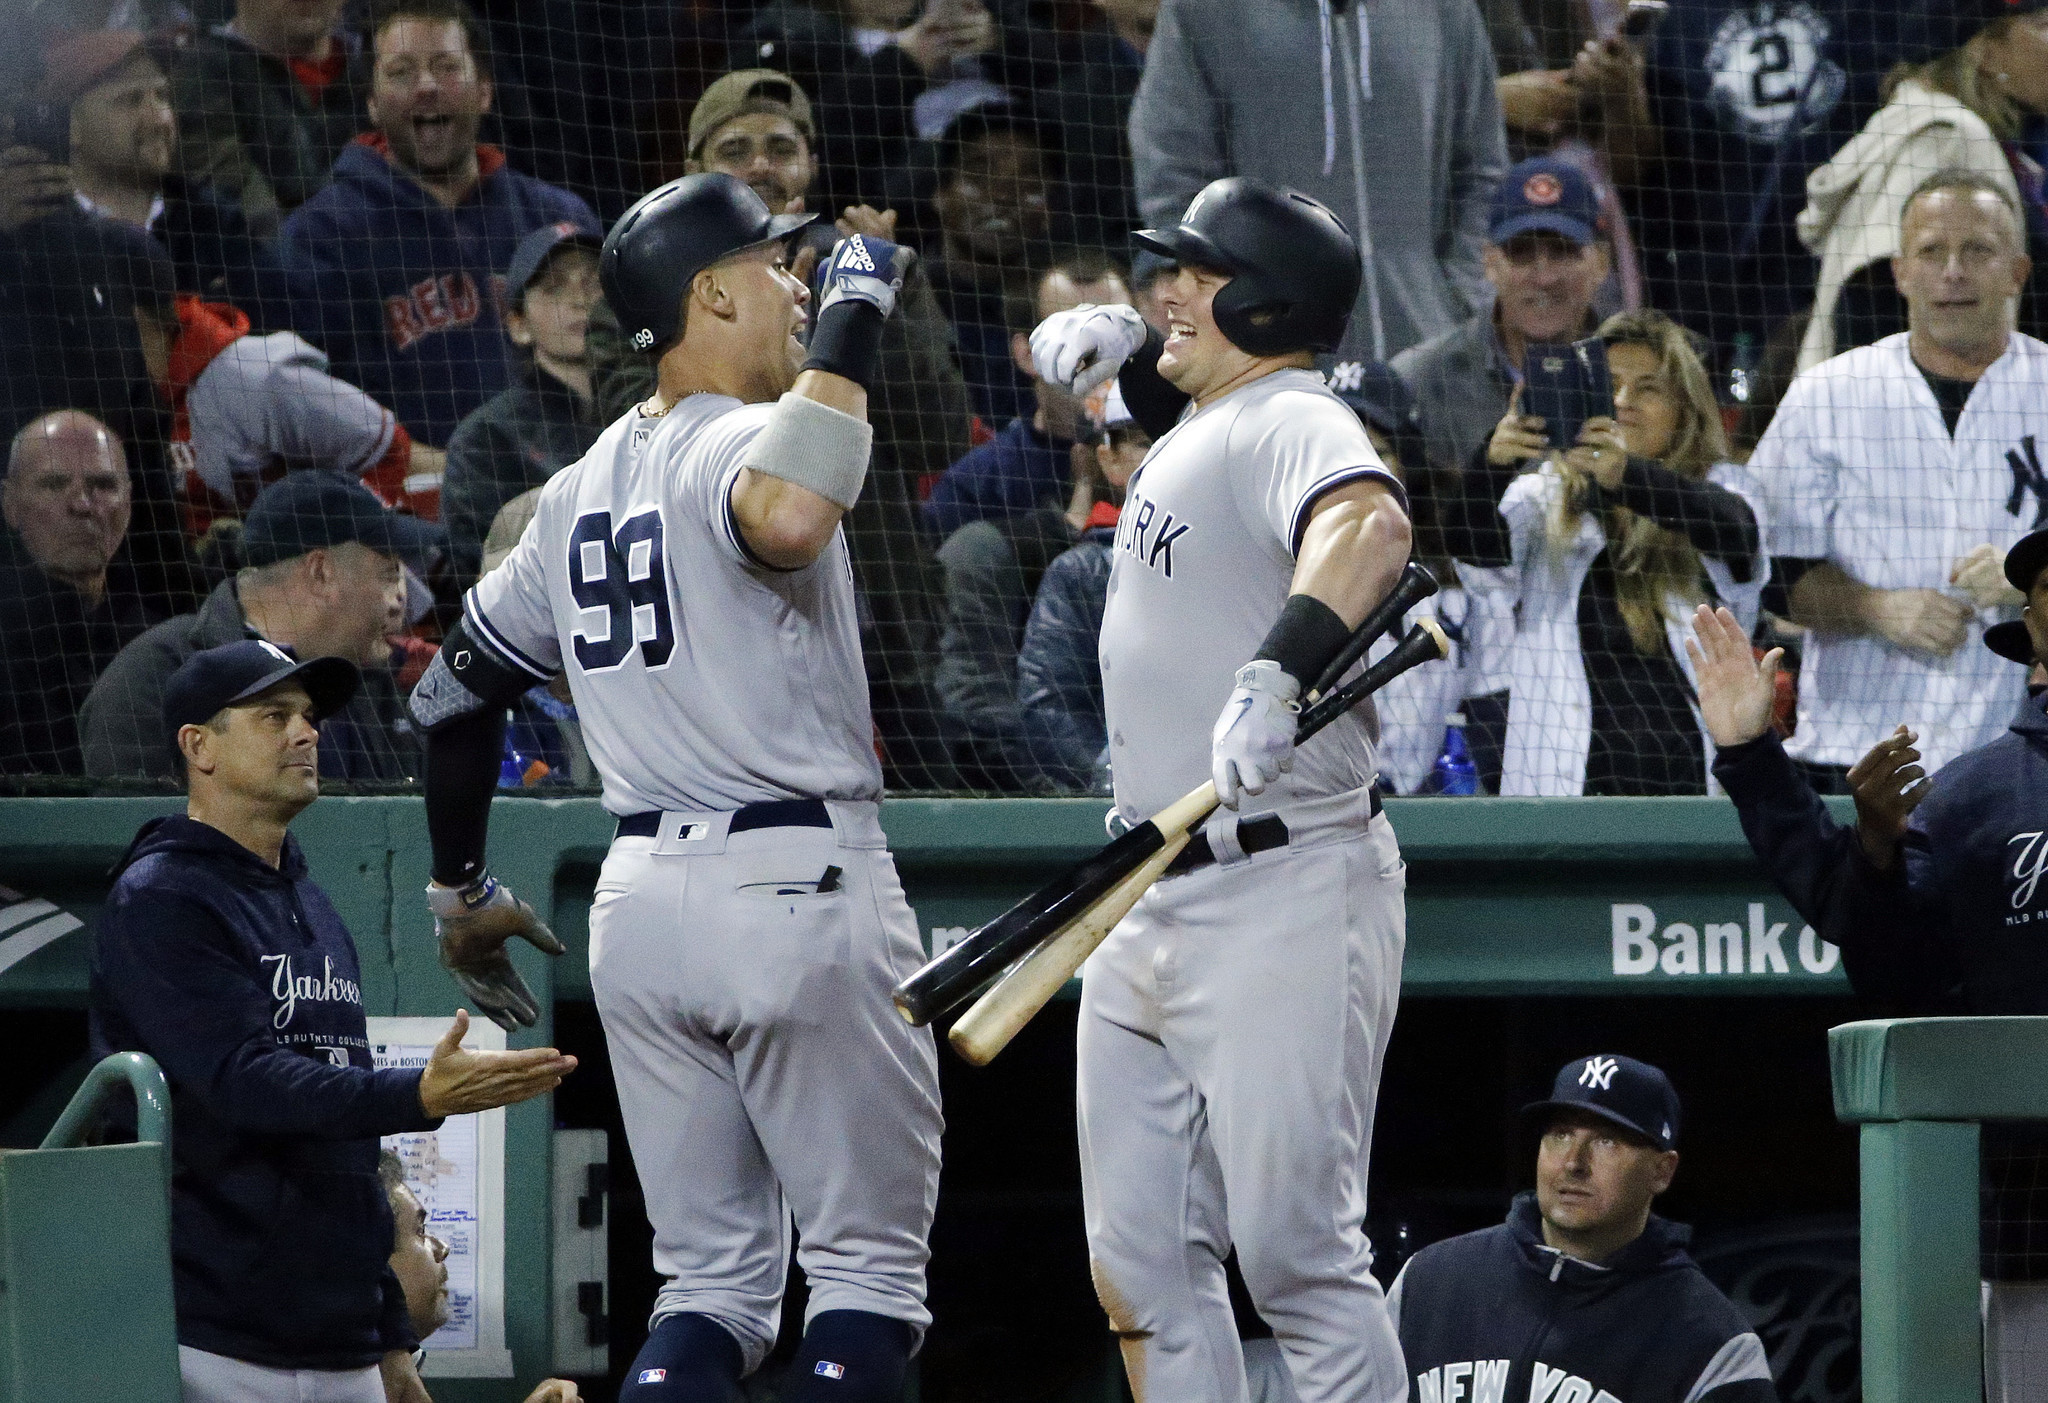 bc42cfeeed7 Yankees Pound Red Sox 11-6